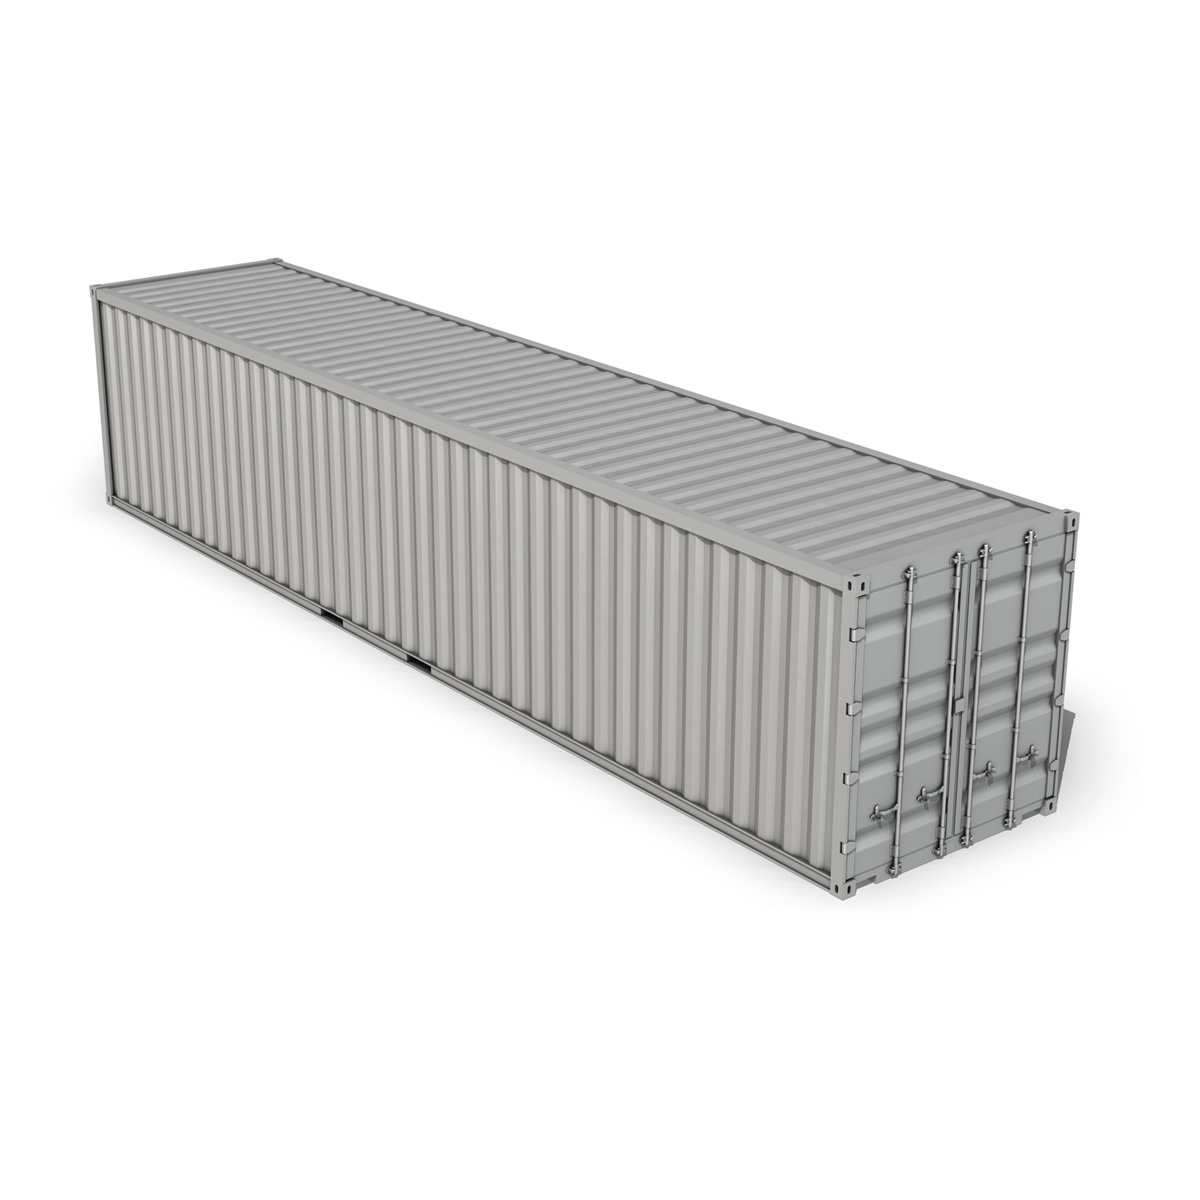 40ft shipping container – mol 3d model 3ds fbx lwo lw lws obj c4d 265141